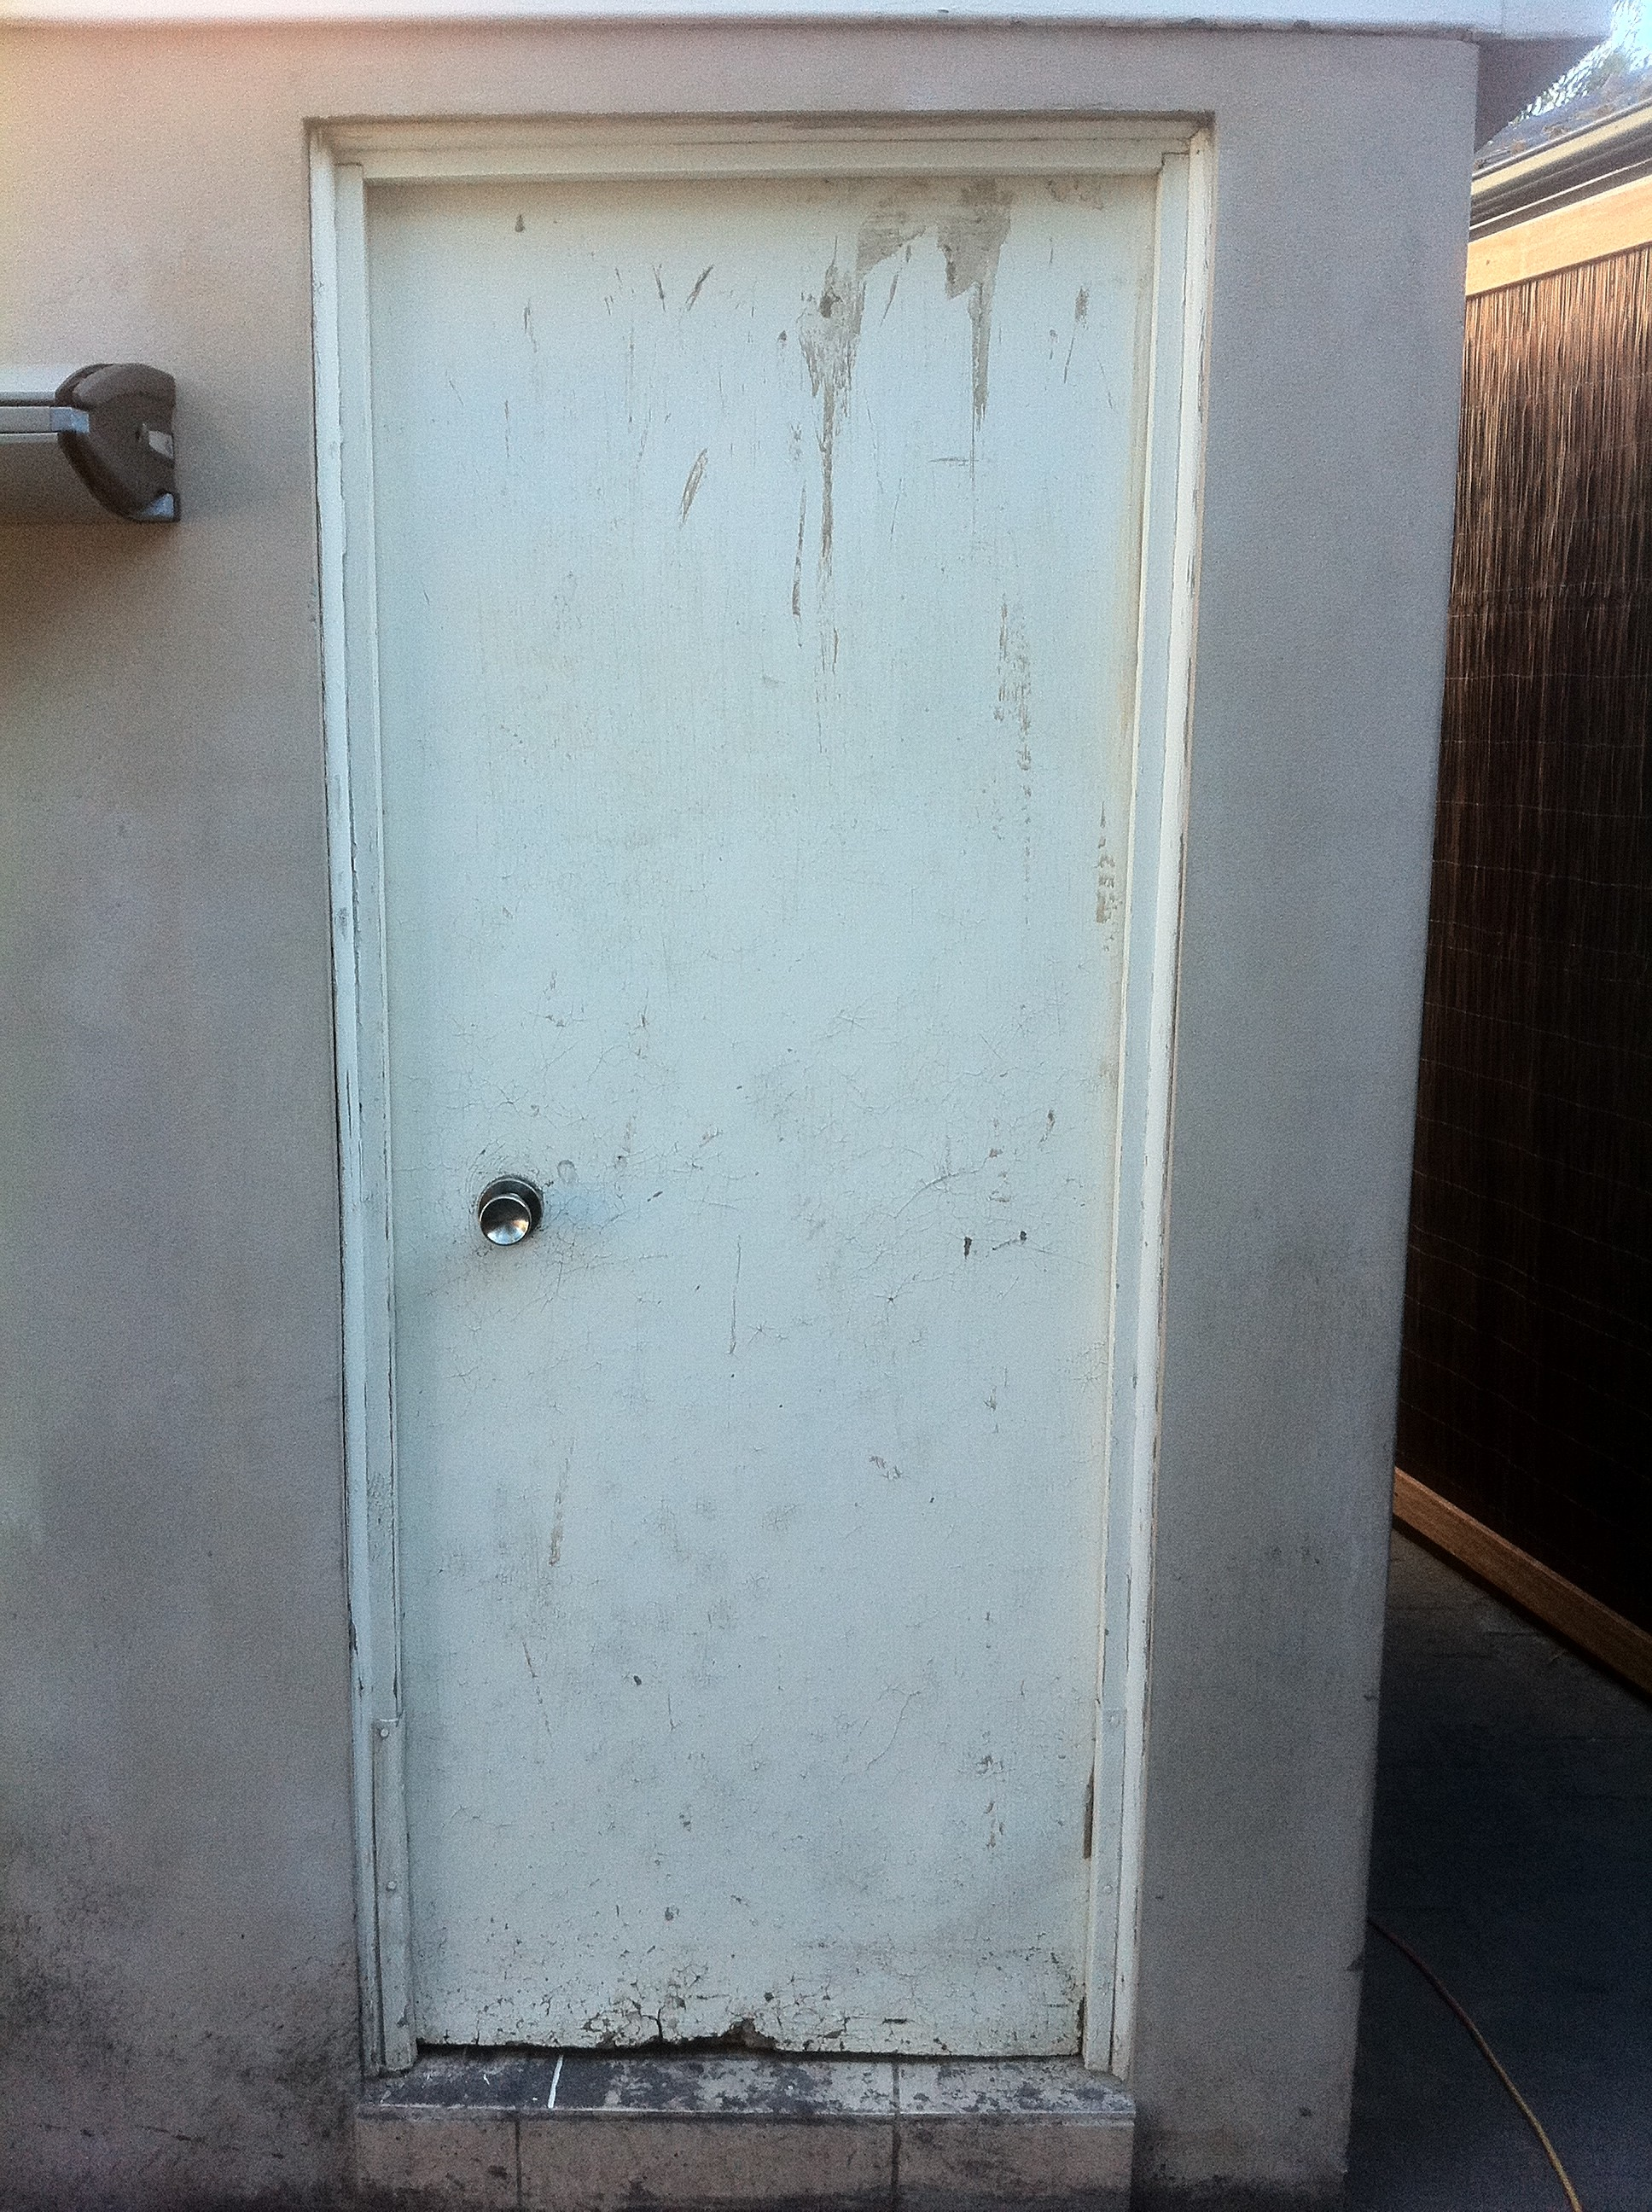 4a - Damaged Laundry Door